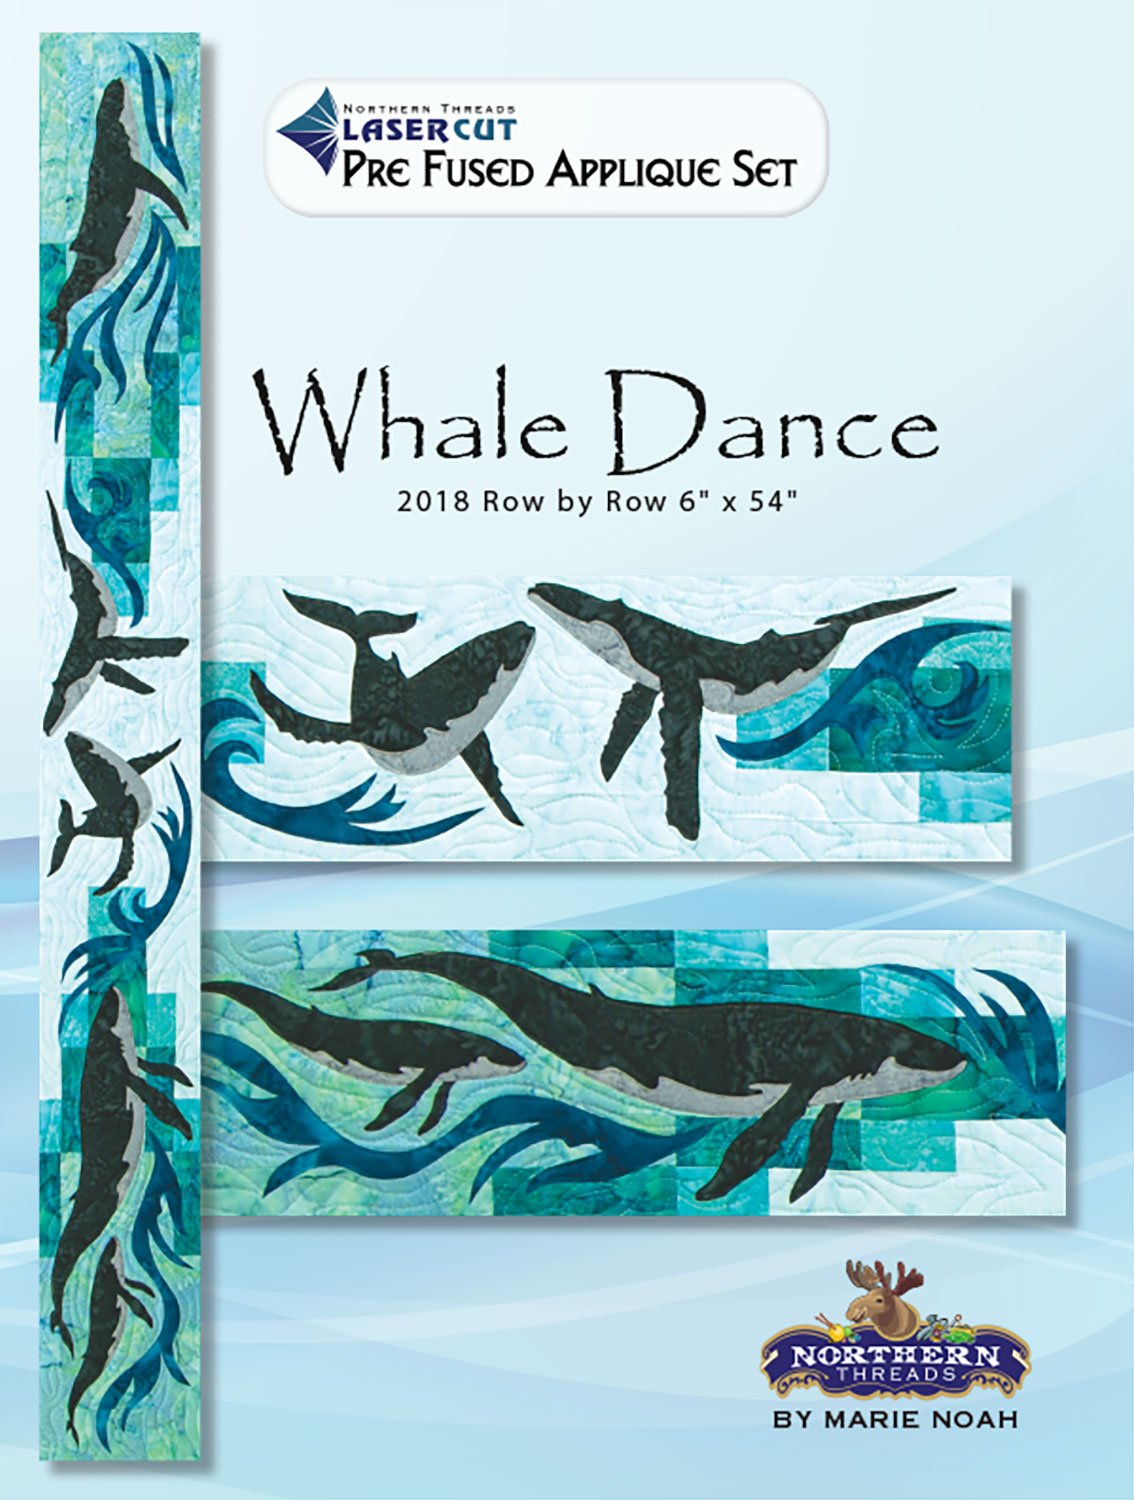 Whale Dance Applique Set Row by Row 2018